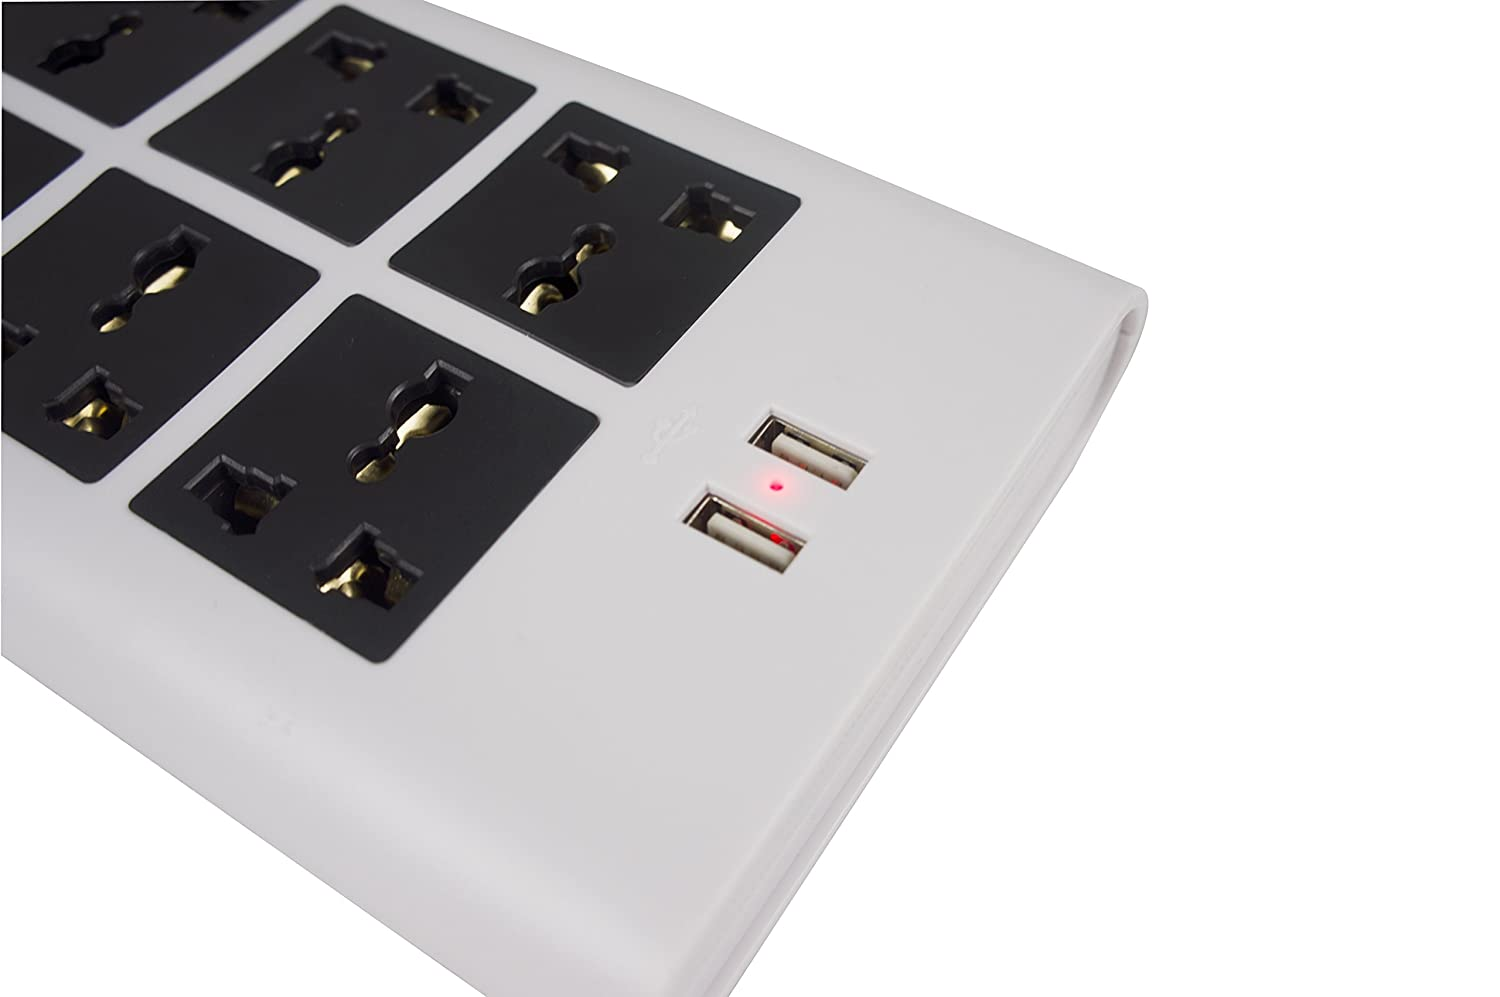 Amazoncom Universal Power Strip 6 Outlets 100v To 220v 250v And Circuit Breaker Protection Electronics Accessories 2500 Watts Surge Protector With For Worldwide Use